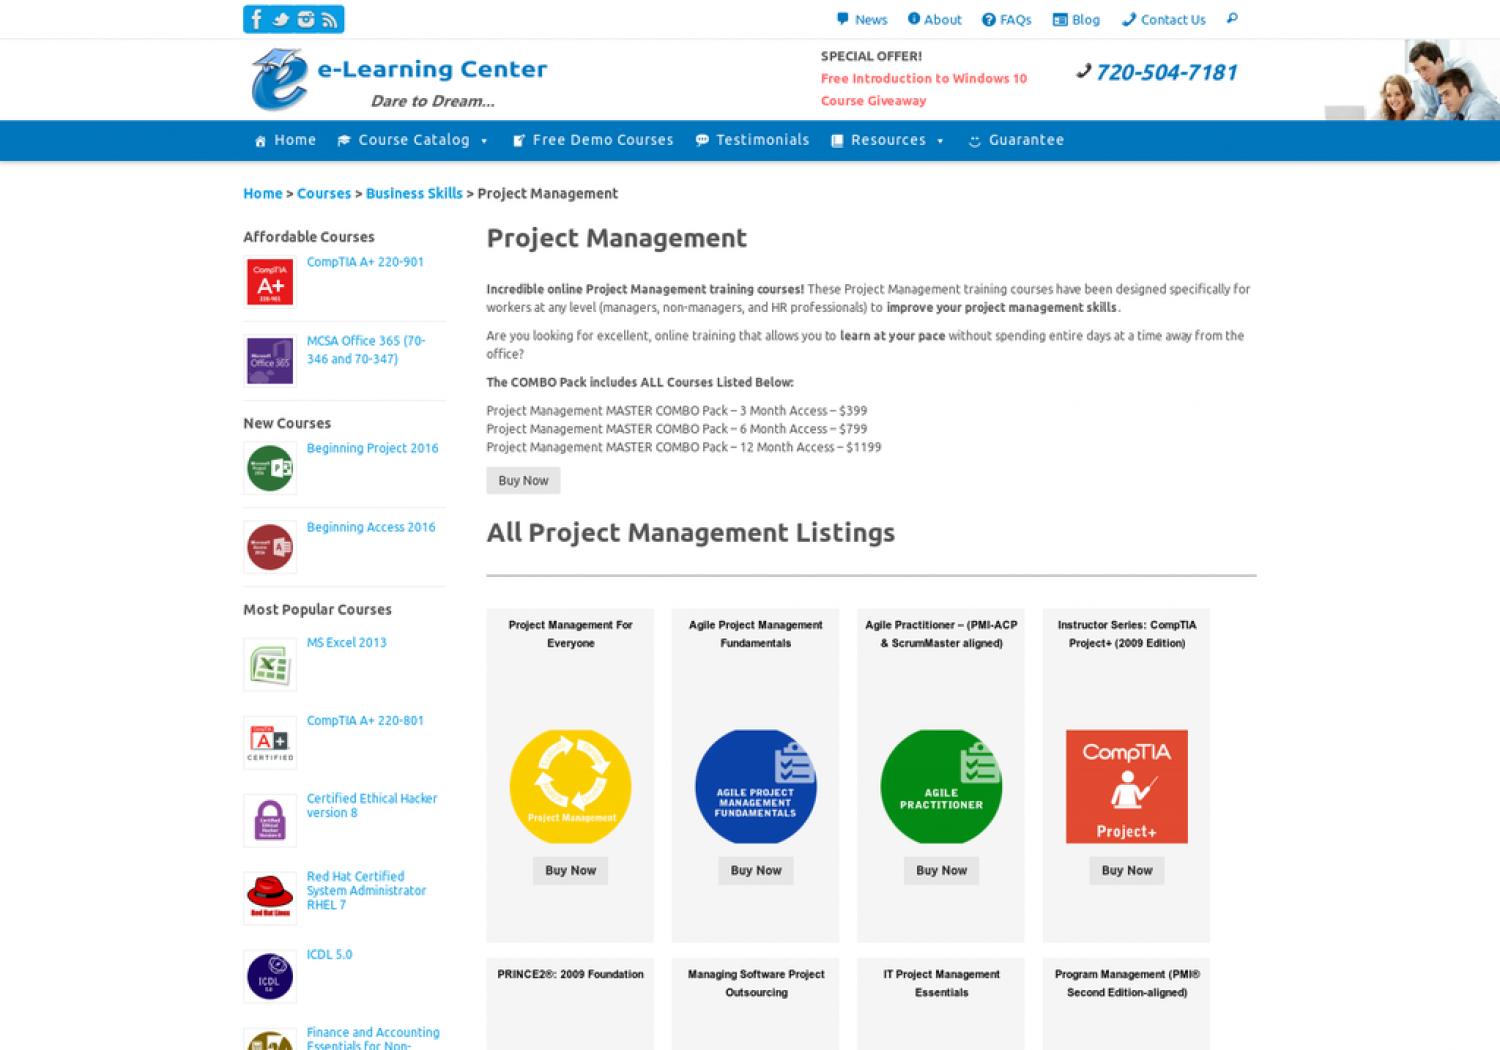 project management courses online Prince2 is the leading project management methodology improve project management skills and employment prospects with prince2 certifications through our online courses and free informational downloads.